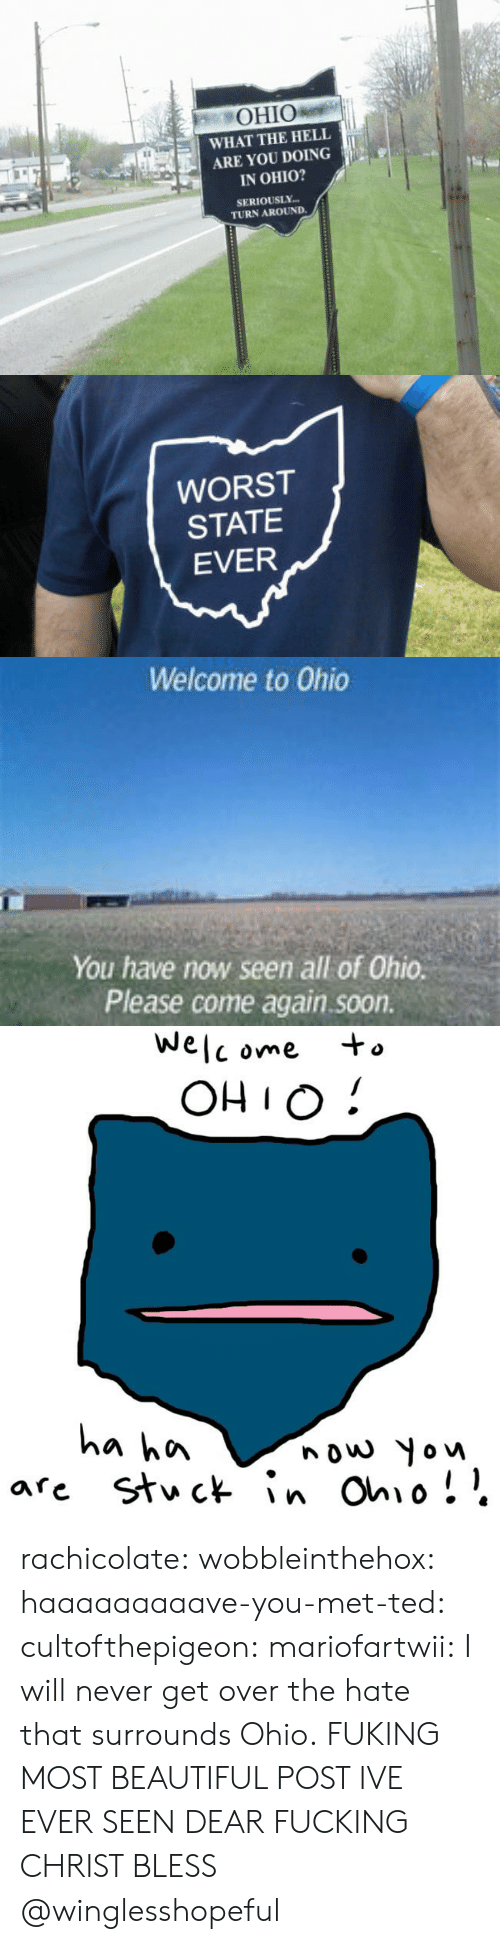 ome: OHIO  WHAT THE HELL  ARE YOU DOING  IN OHIO?  SERIOUSLY  TURN AROUND.   WORST  STATE  EVER   Welcome to Ohio  You have now seen all of Ohio.  Please come again.soon.   We  C ome  OHIO!  a hn  nouw Yow rachicolate: wobbleinthehox:  haaaaaaaaave-you-met-ted:  cultofthepigeon:  mariofartwii:  I will never get over the hate that surrounds Ohio.  FUKING MOST BEAUTIFUL POST IVE EVER SEEN DEAR FUCKING CHRIST BLESS      @winglesshopeful